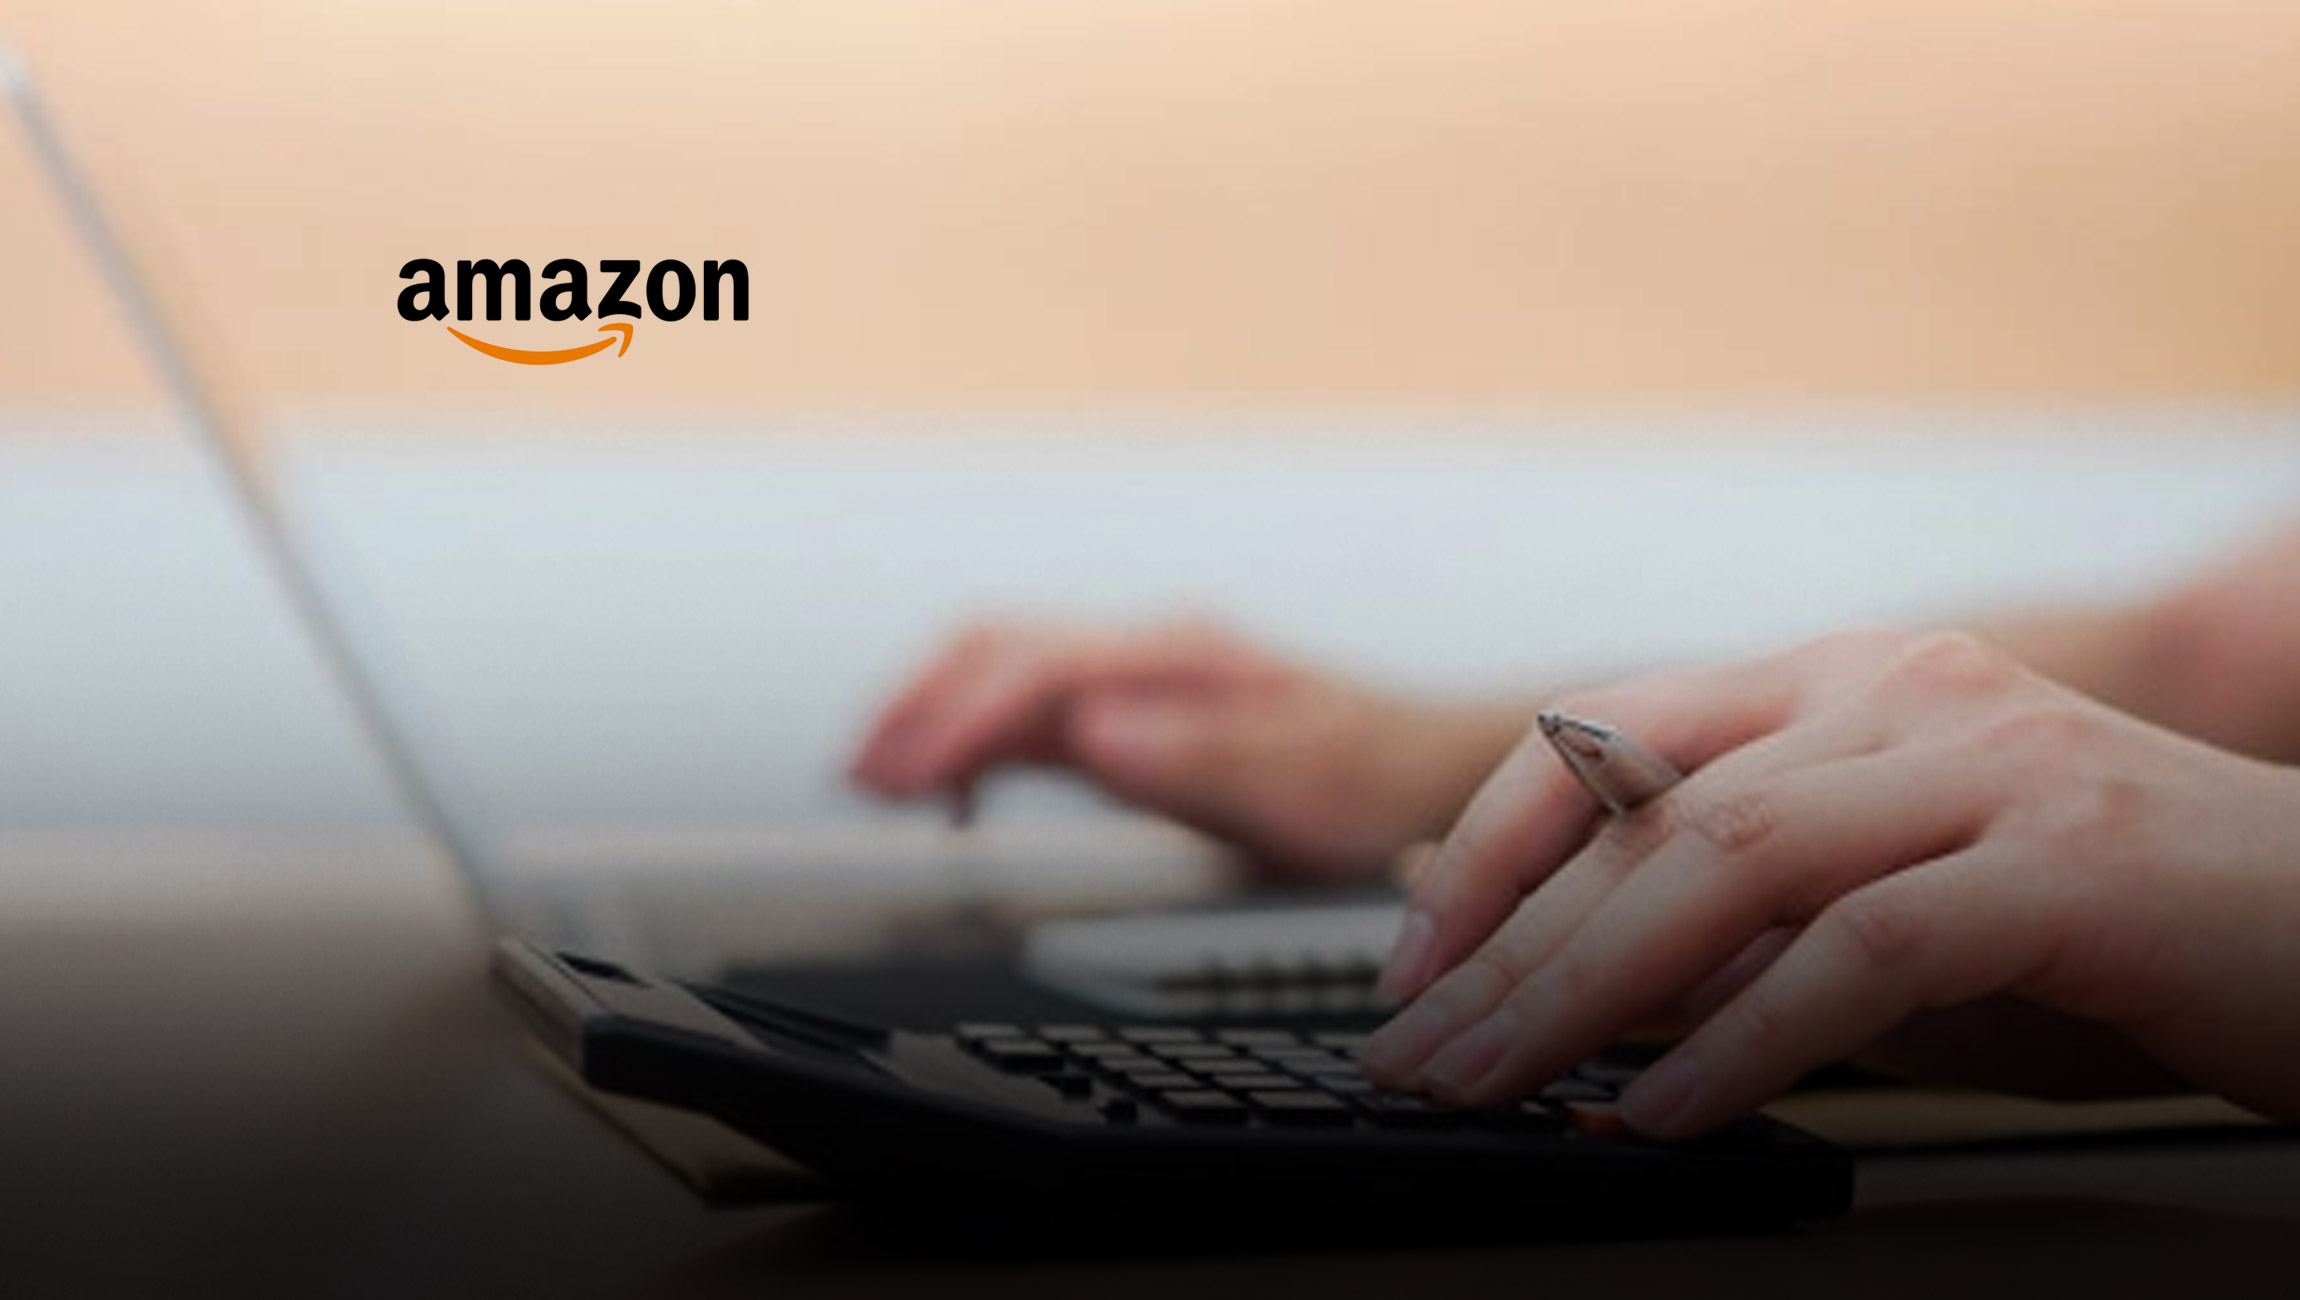 AWS Announces Five New Capabilities for Amazon Connect, Helping Customer Service Representatives Offer More Personalized, Efficient, and Effective Experiences for Customers—All Powered by AWS's Industry-Leading Machine Learning Technology